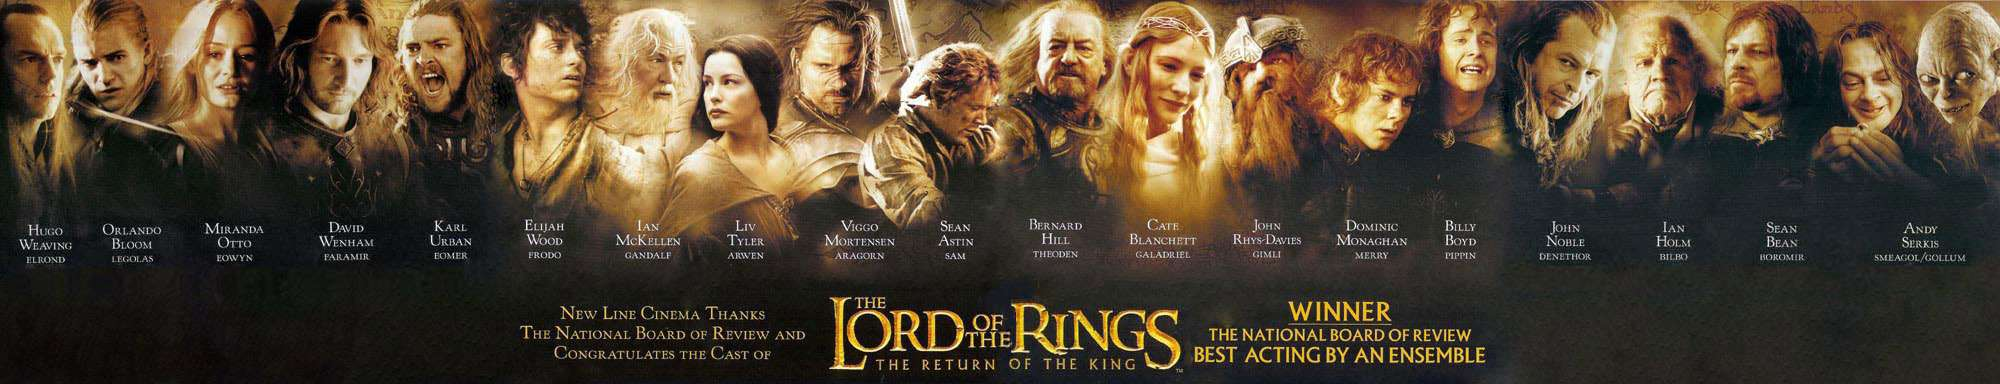 Fellowship Of The Ring Movie Cast